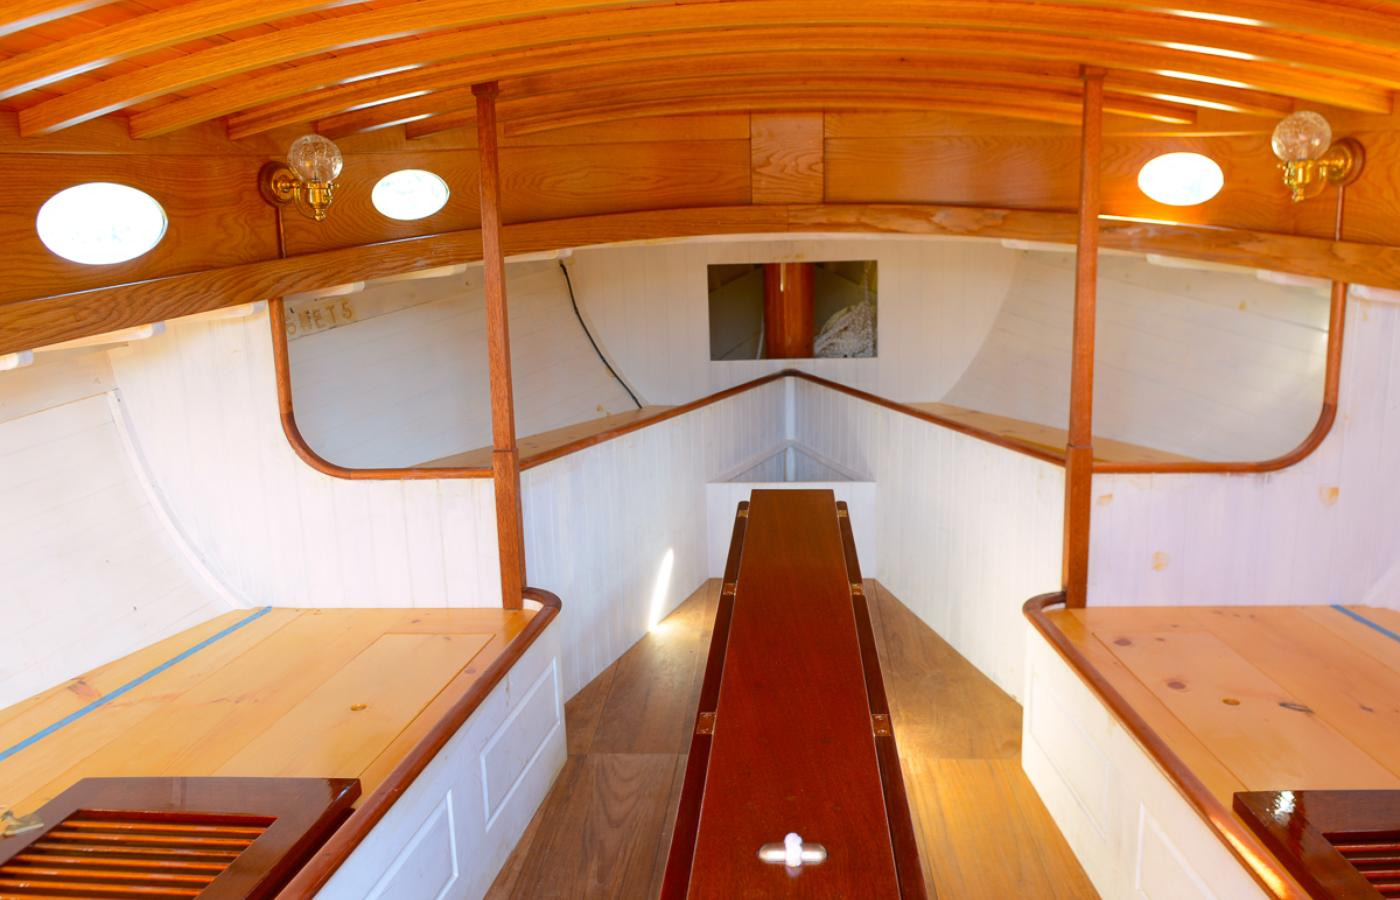 A second life for a catboat